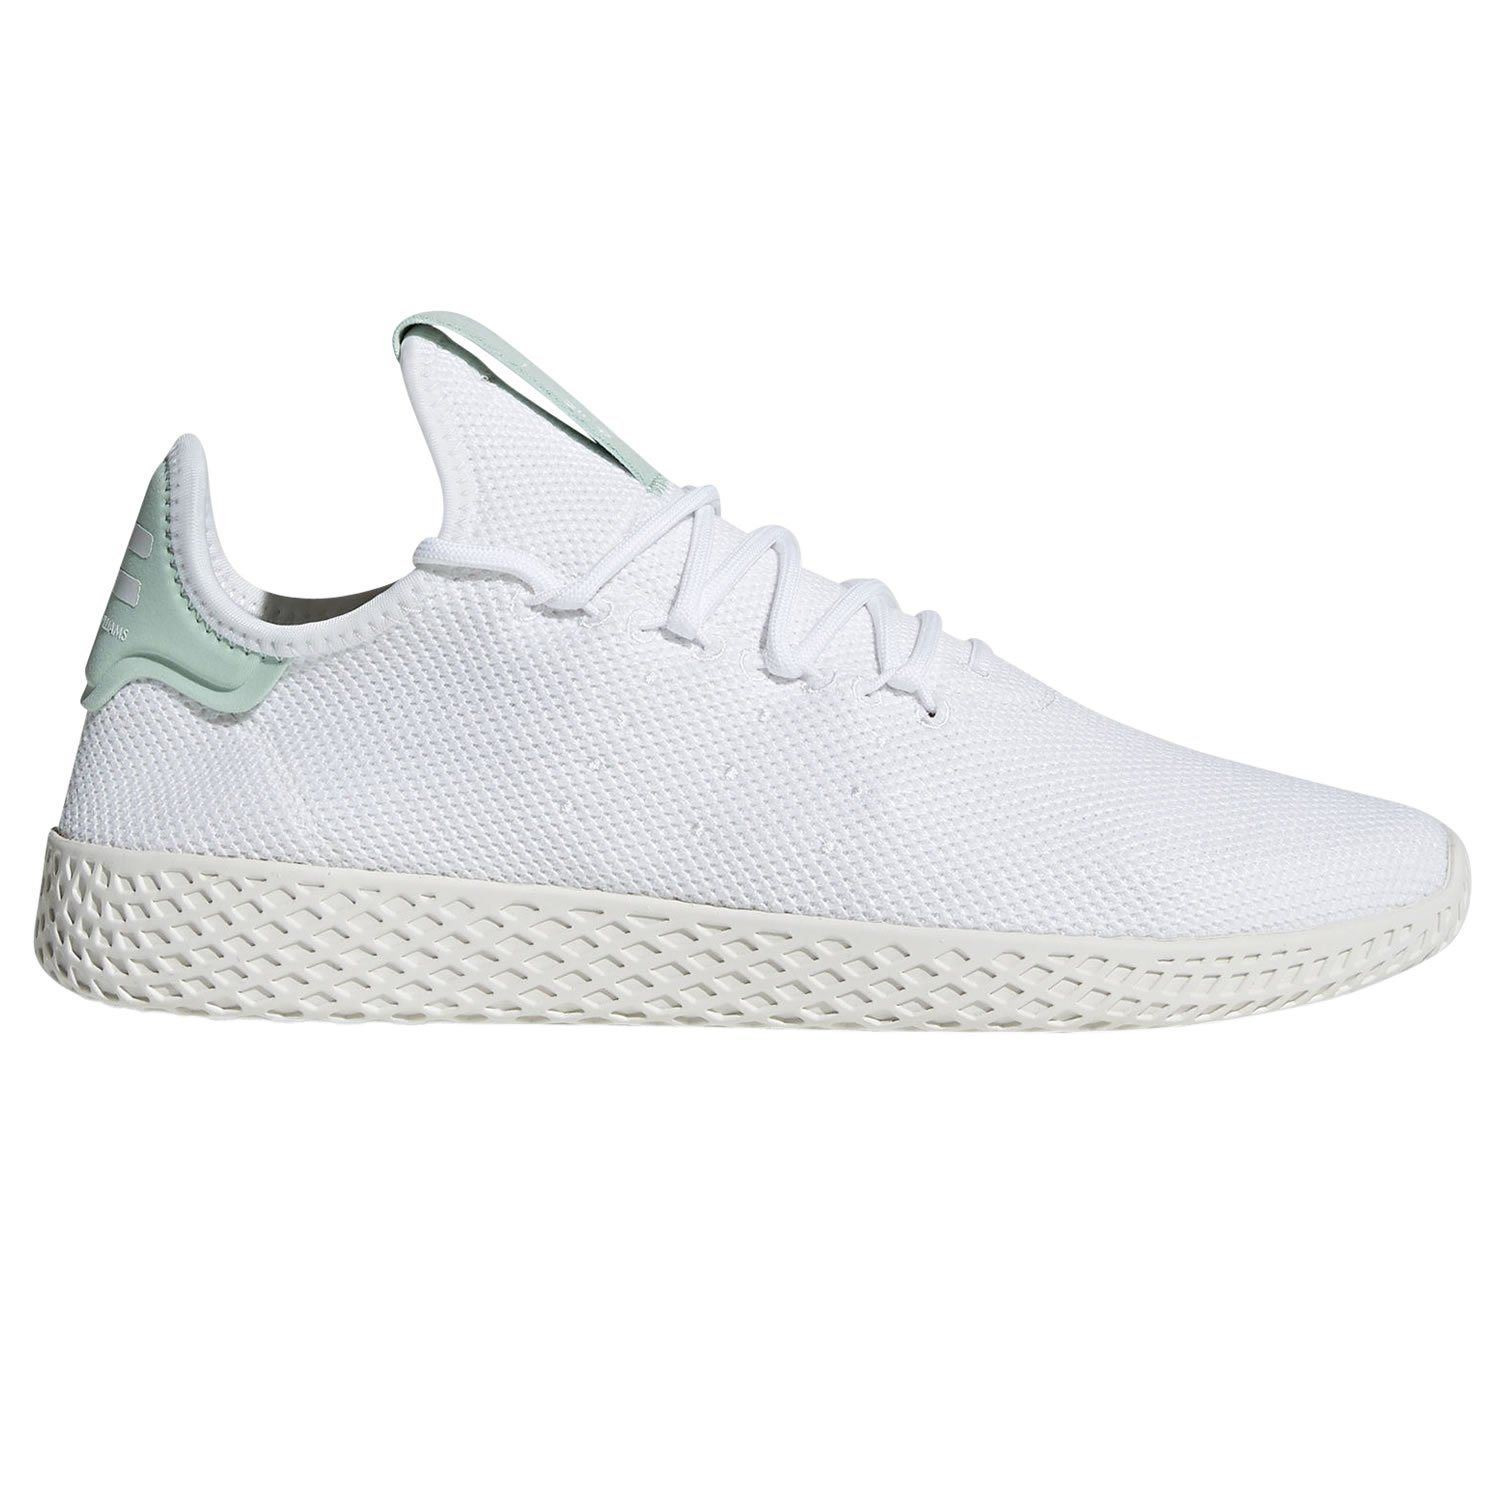 f9d5946c451c5 Details about adidas ORIGINALS PHARRELL WILLIAMS HU TENNIS TRAINERS WHITE  GREEN MEN S UNISEX